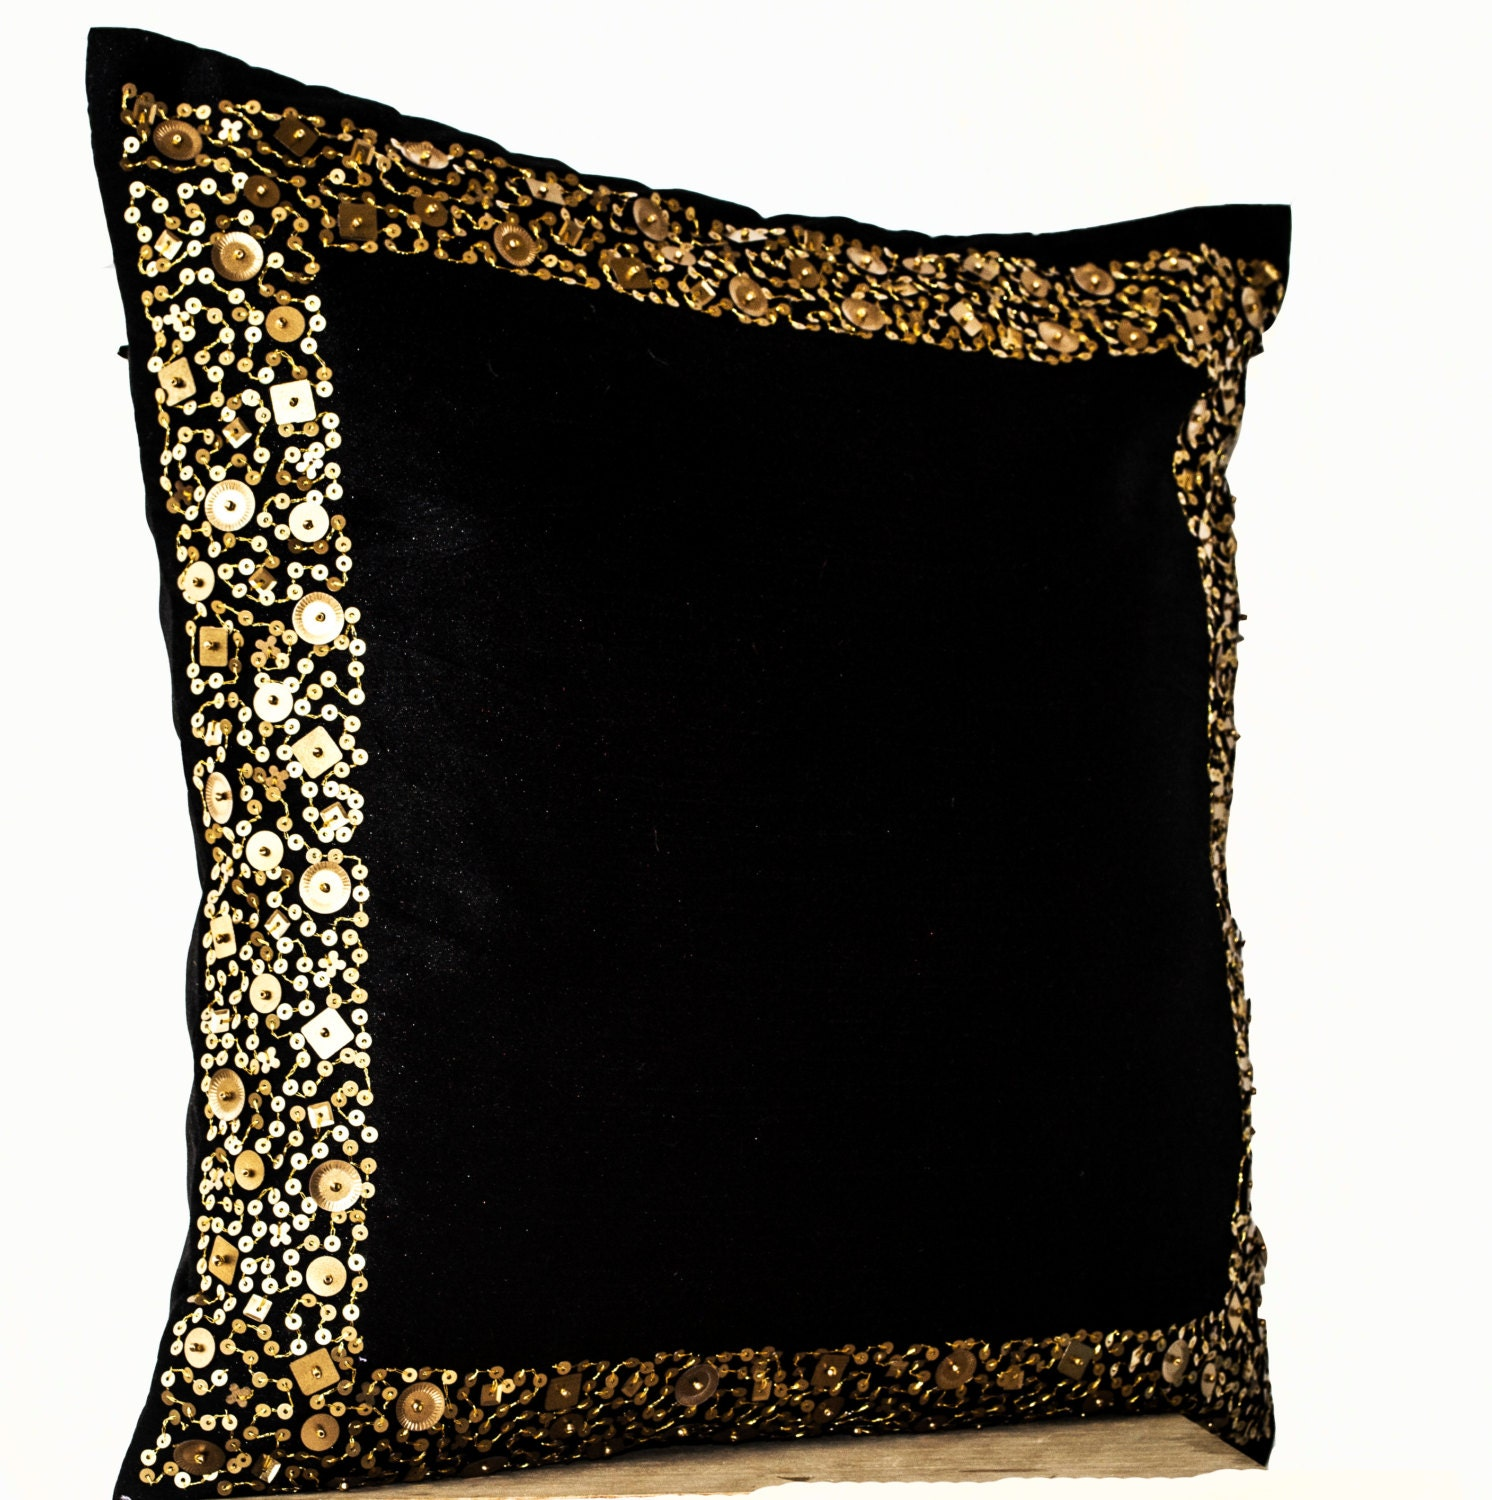 Decorative Throw Pillows Black cushion with gold sequin